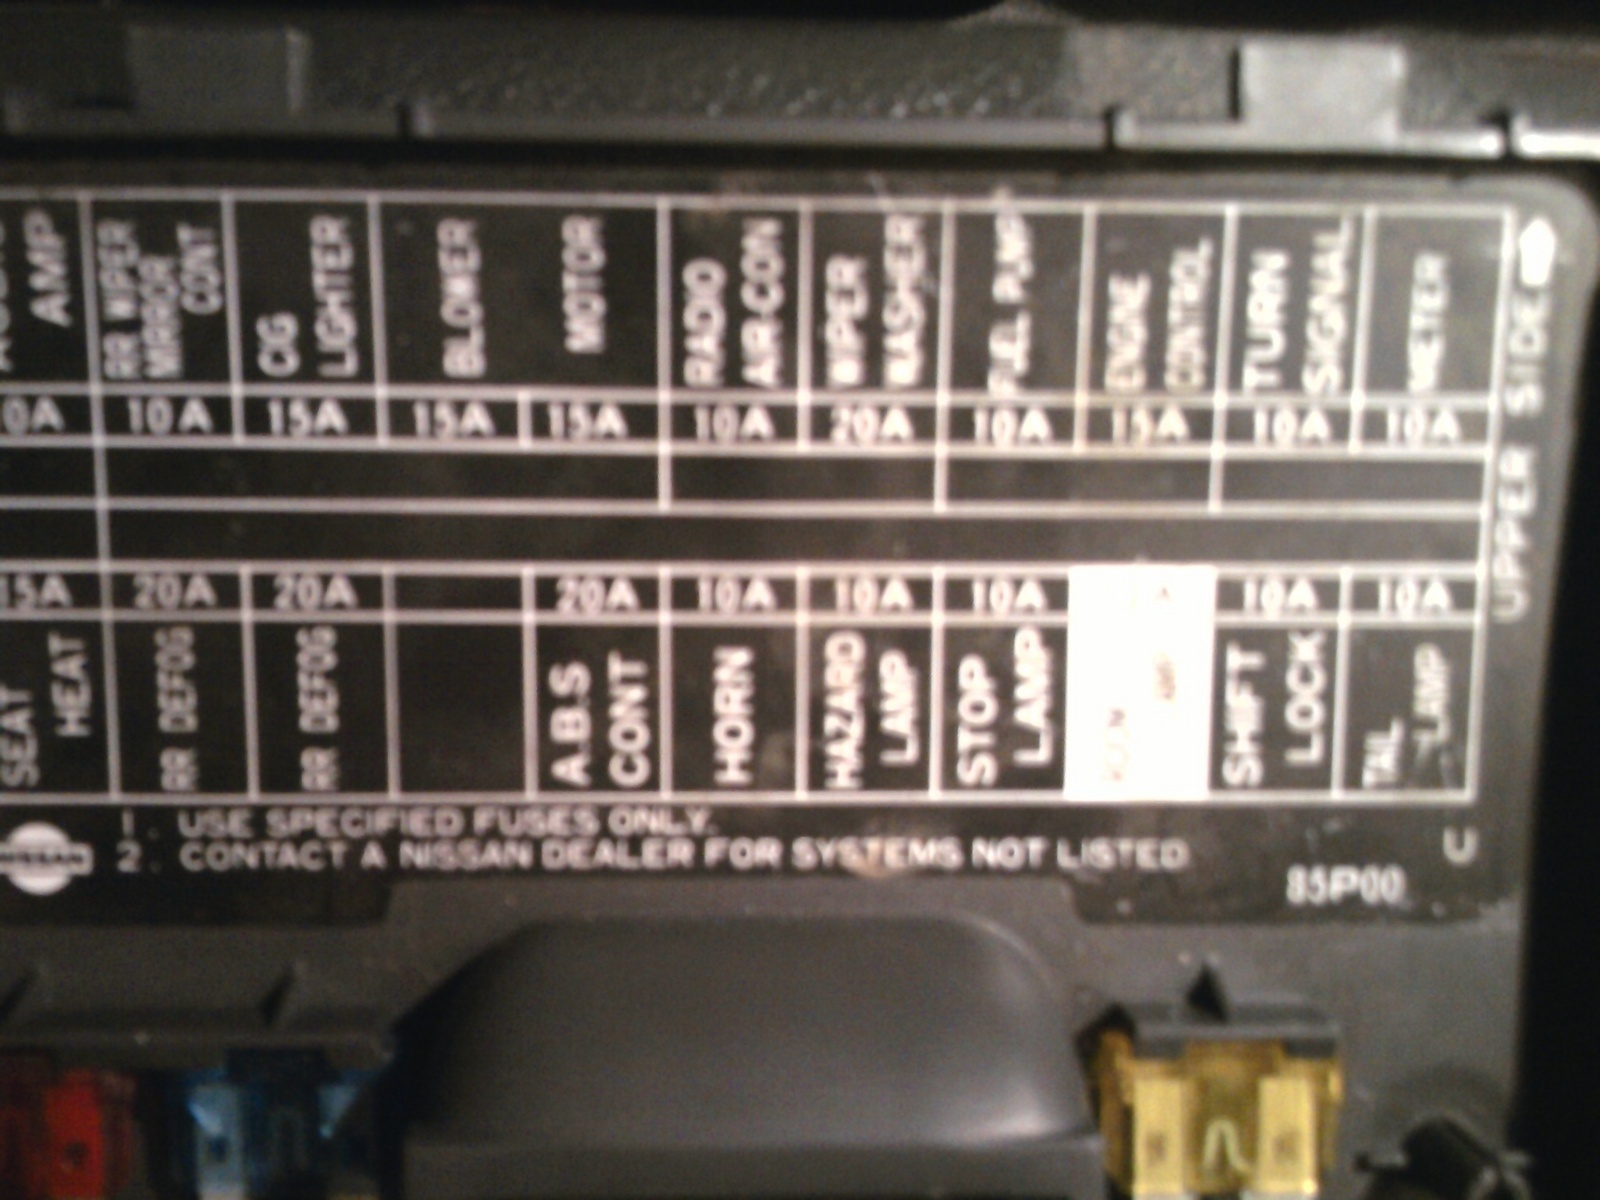 hight resolution of nissan pickup questions where is the fuse for the hazard lights onwhere is the fuse for the hazard lights on a 1995 nissan 4x4 manual speed pick up located